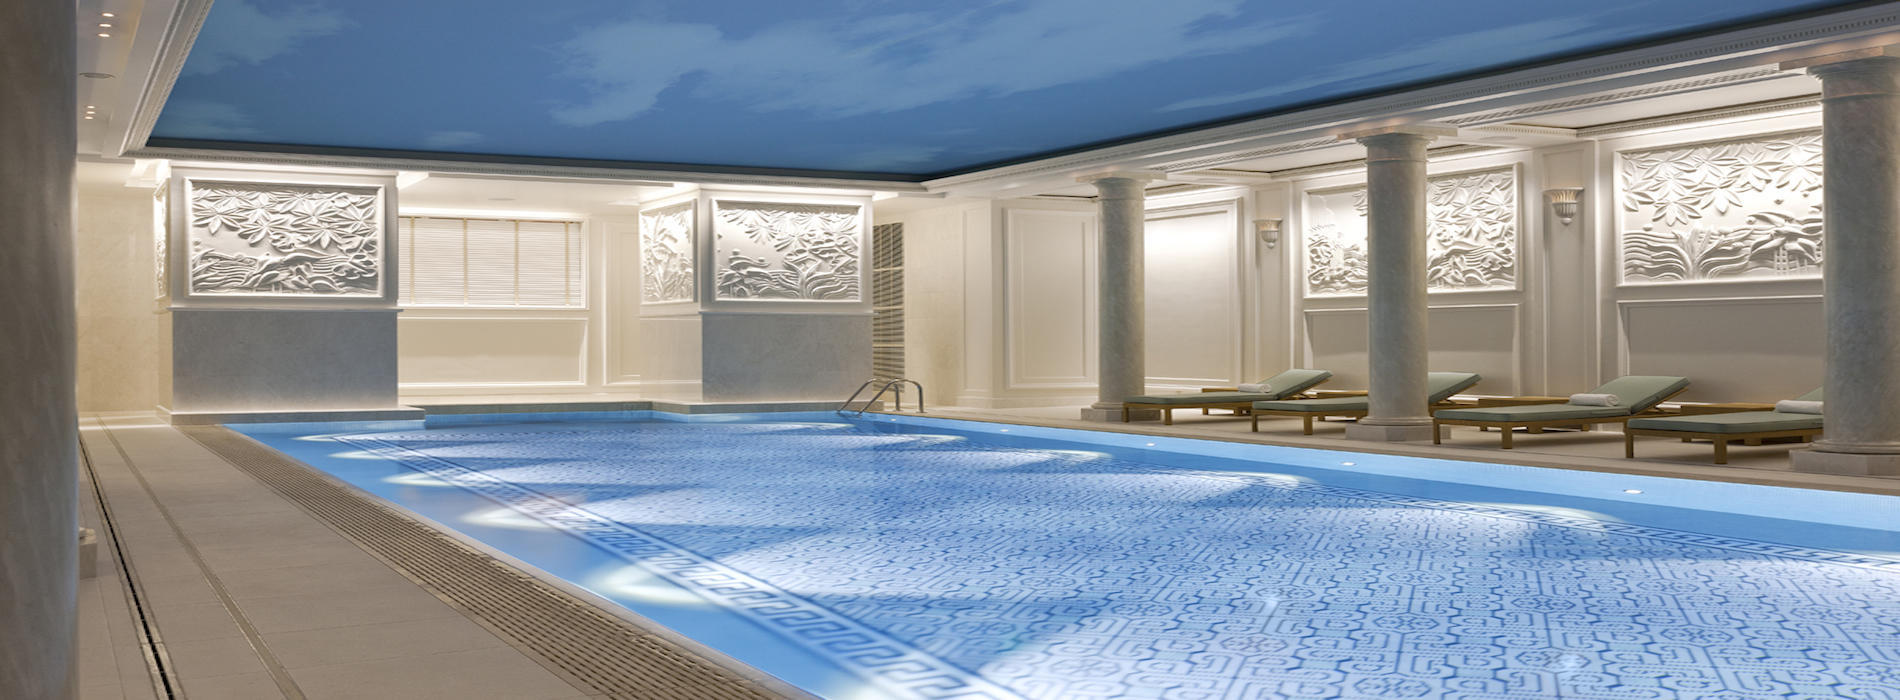 Les plus belles piscines d 39 h tels paris le magazine for Piscine hotel paris